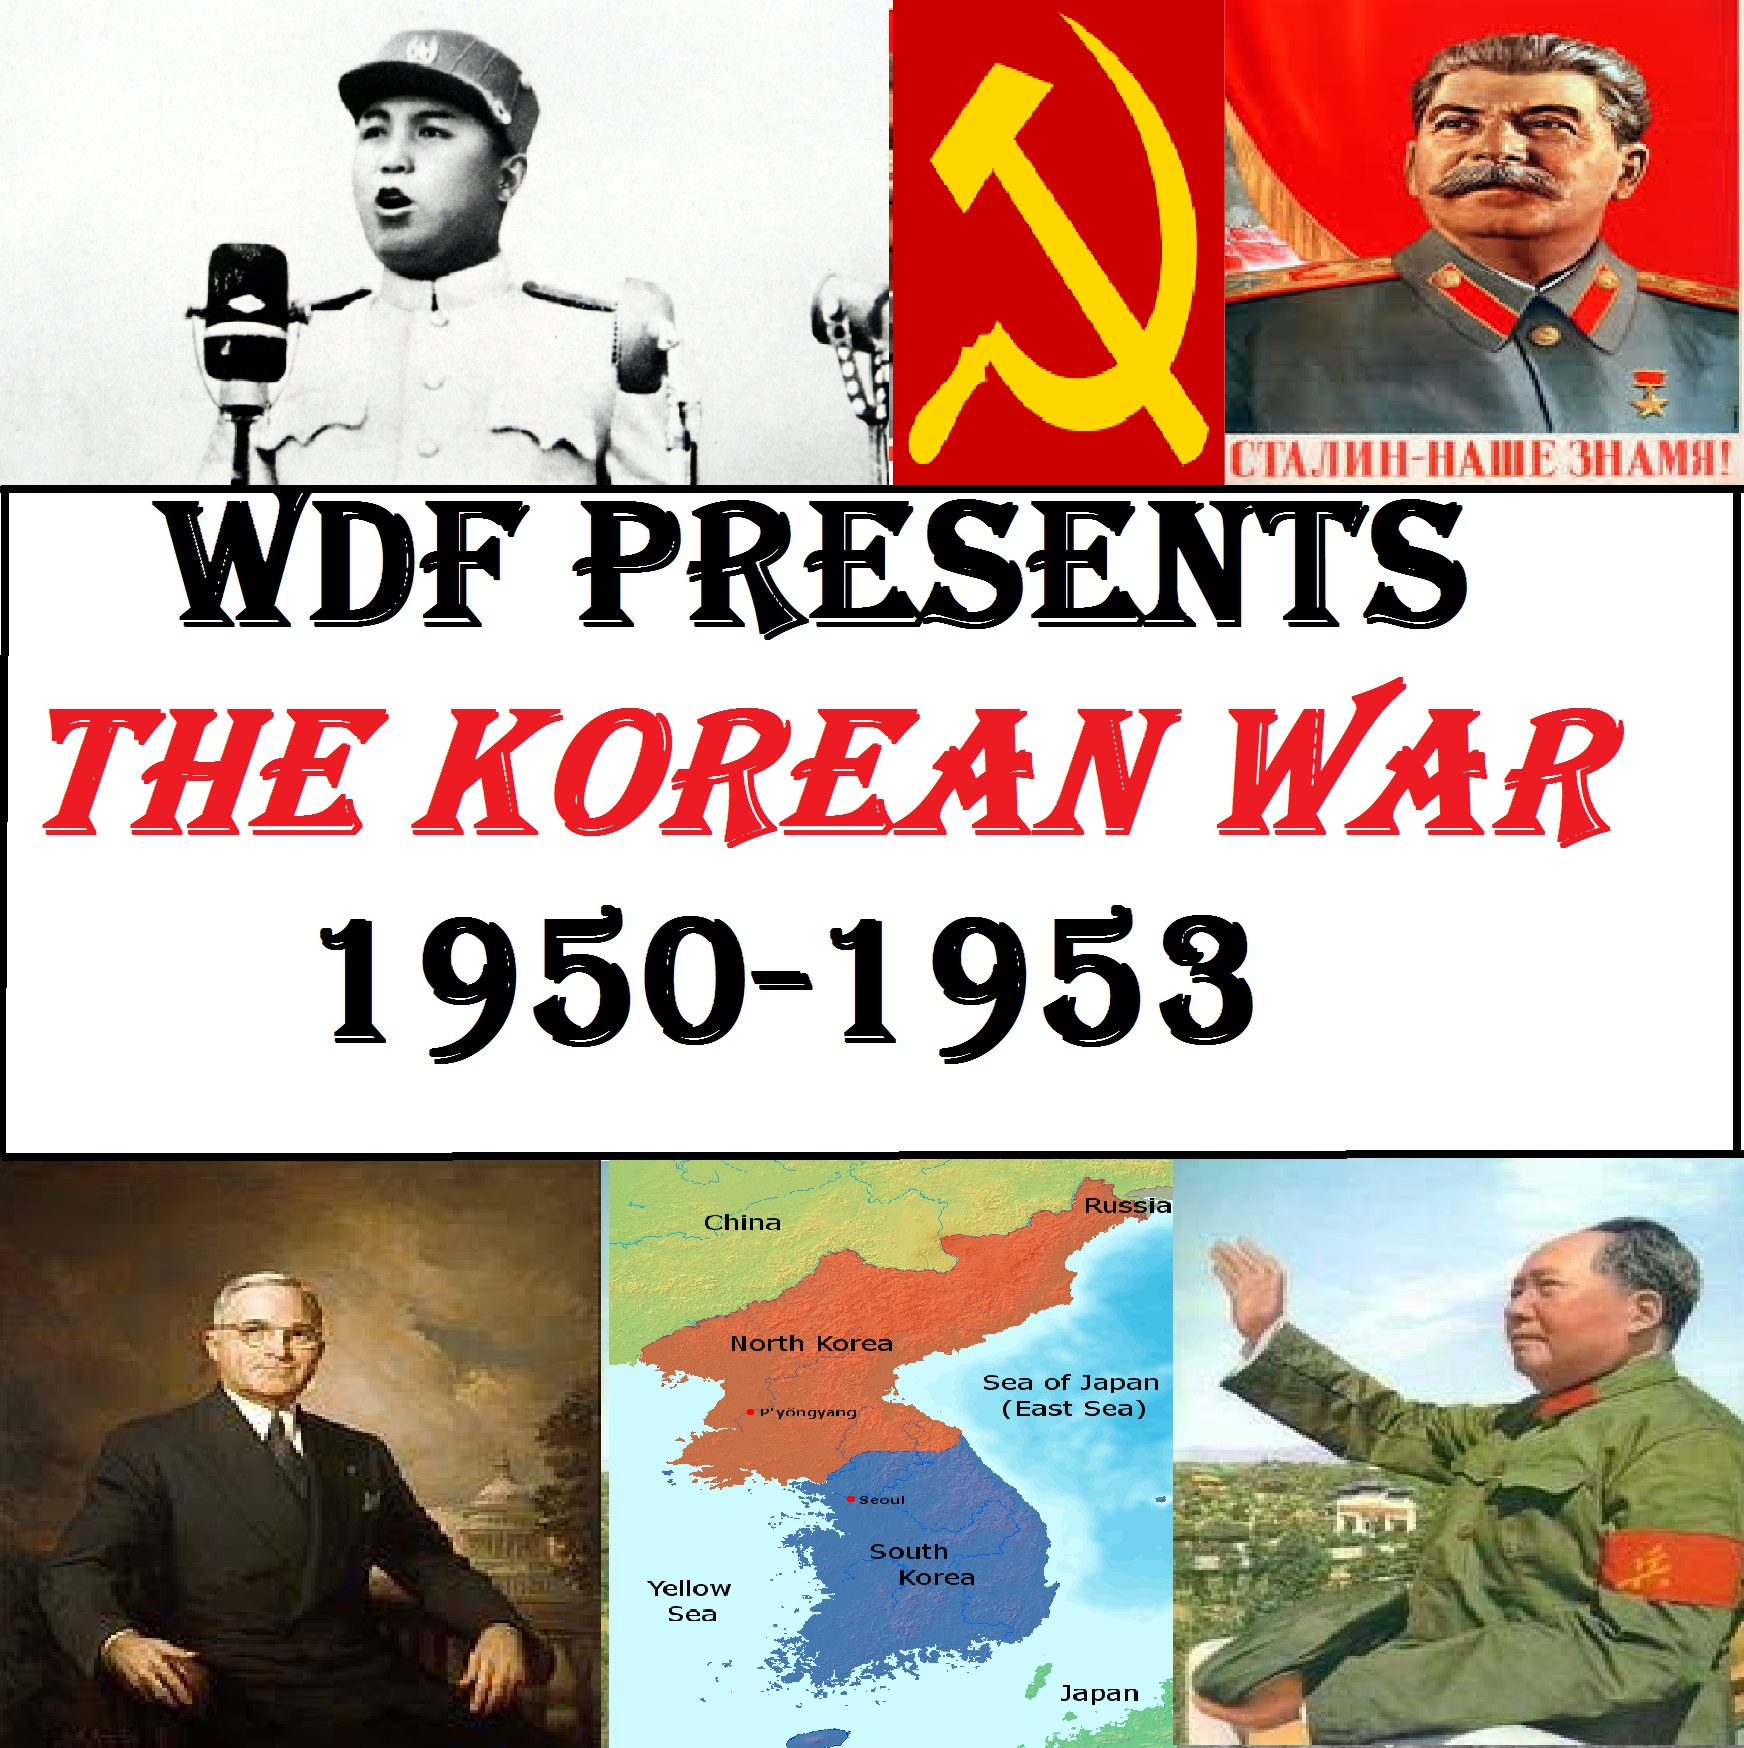 Our current podcast series looks at the Korean War from a perspective you may well find surprising, if not controversial...